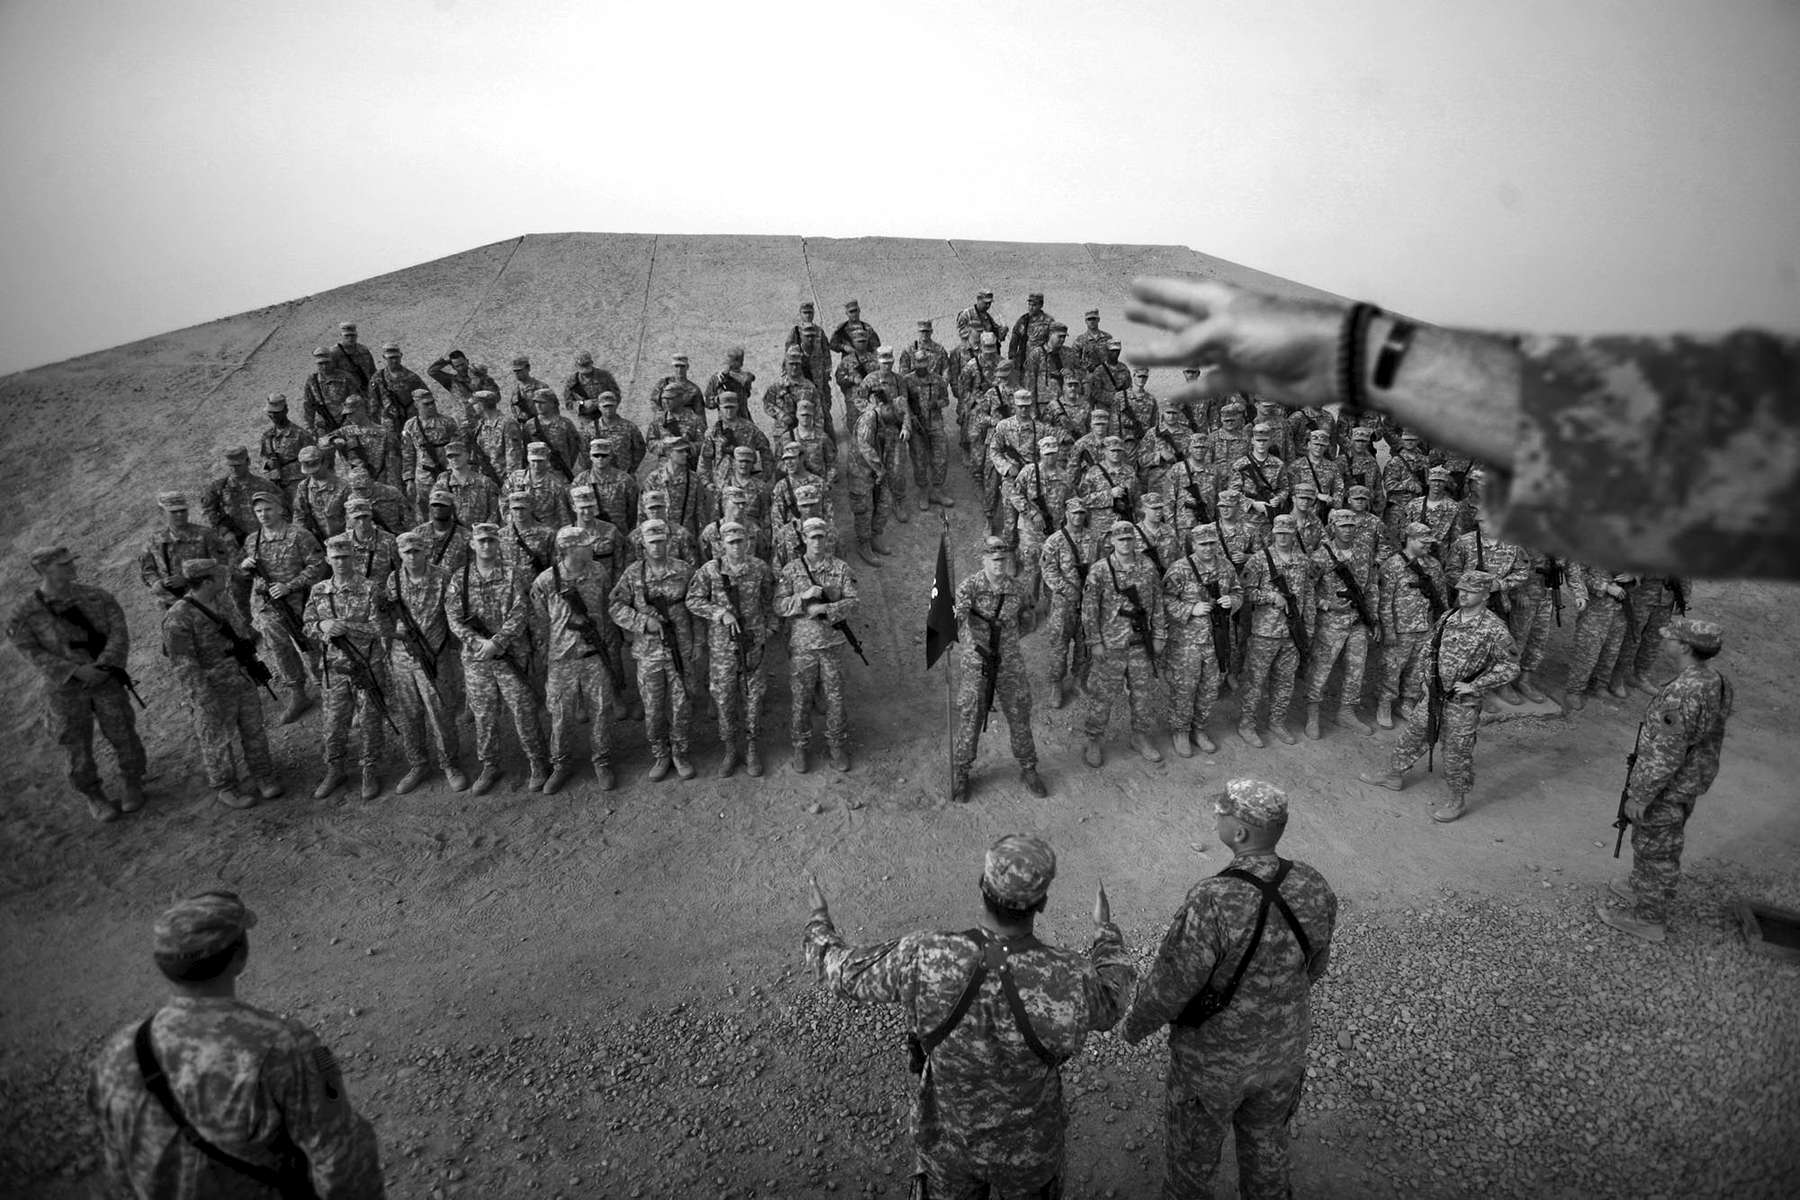 Soldiers from Virginian National Guard's Bravo Company line up for a picture at Camp Adder in Iraq. They are posing for one of their last group pictures before returning home. The place they are posing is an old bunker used during the Saddam Hussein reign.